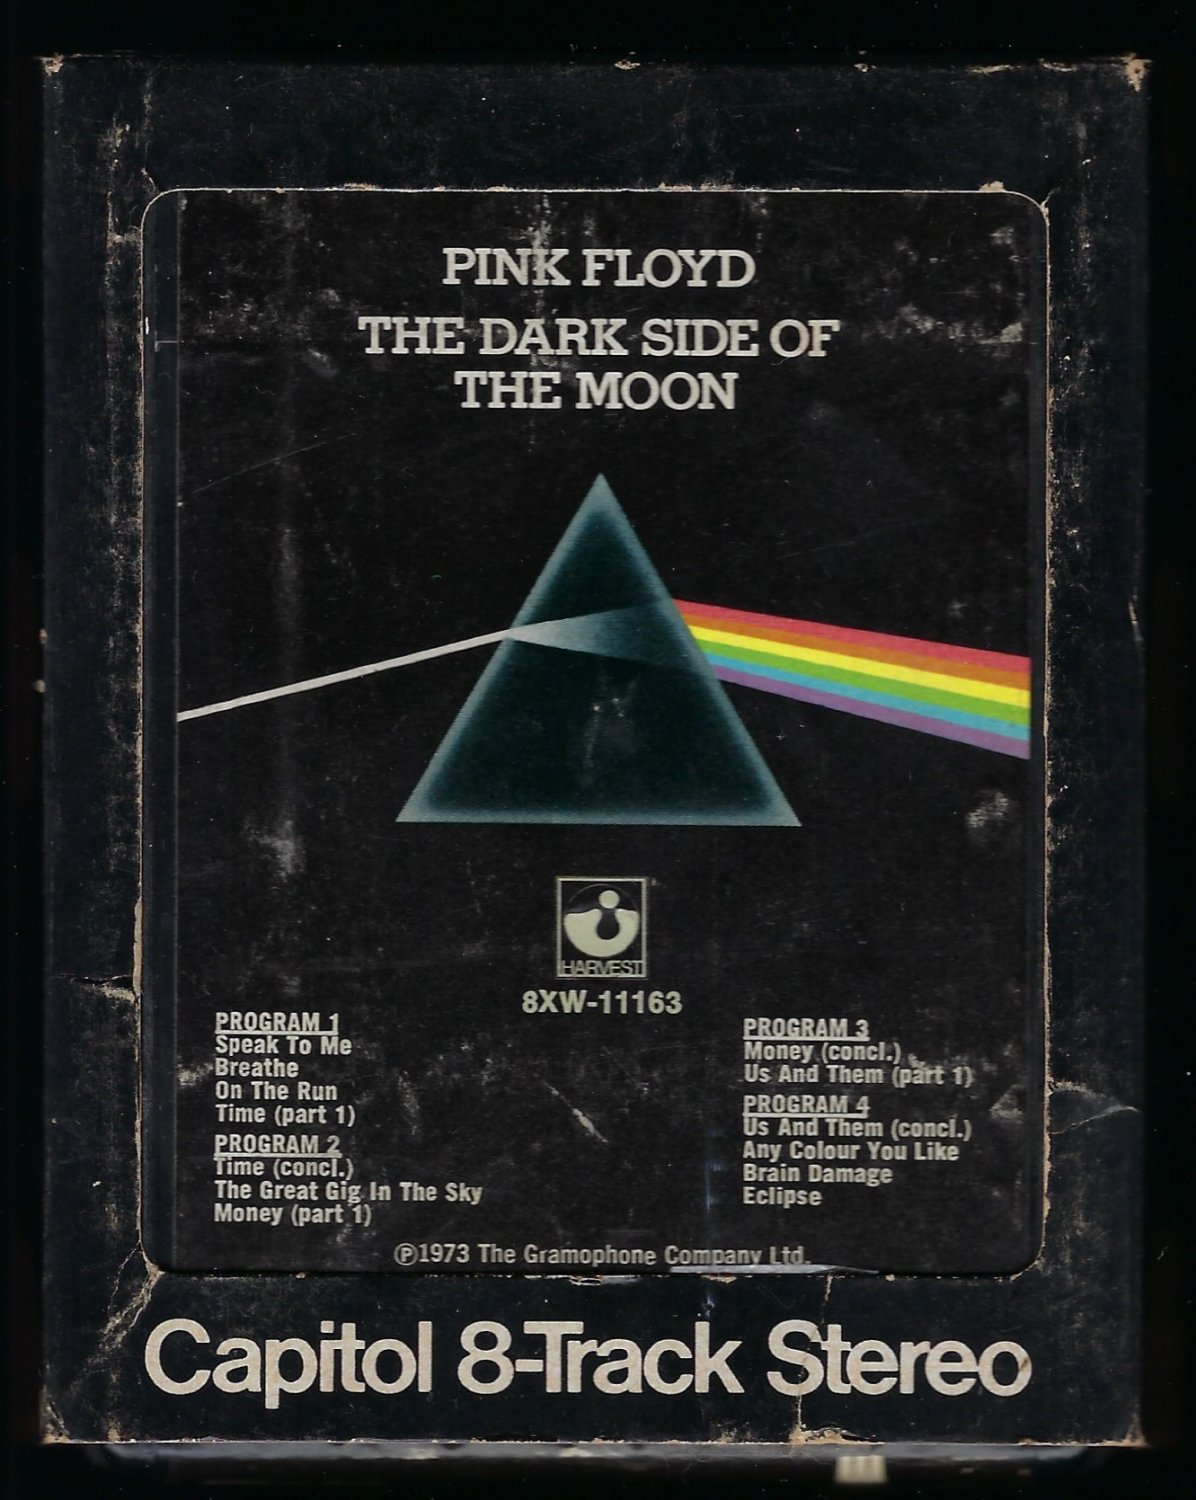 Pink Floyd - The Dark Side Of The Moon 1973 CAPITOL T9 8-TRACK TAPE